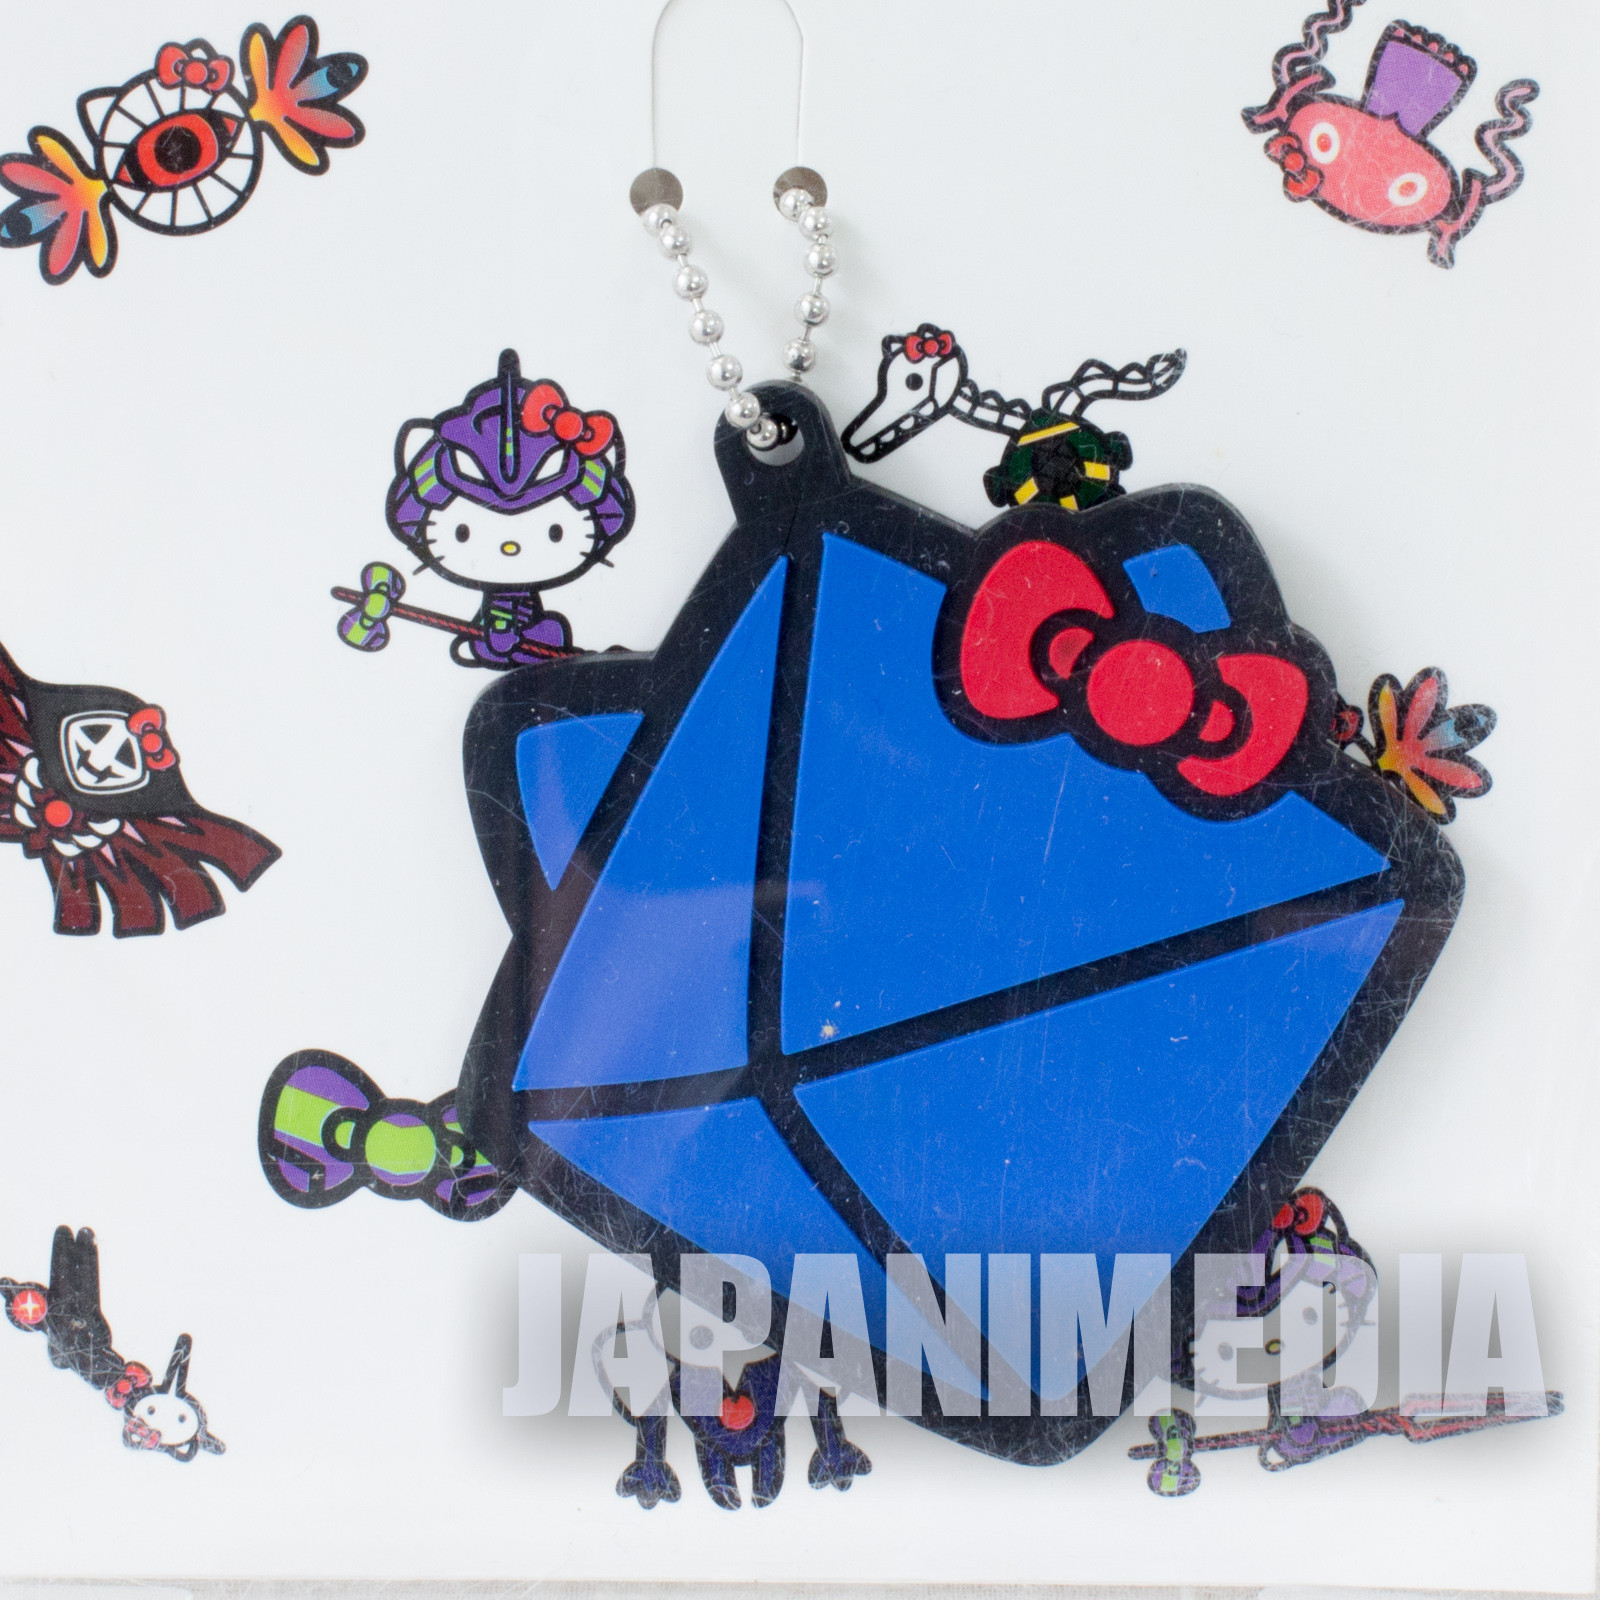 Evangelion 6th Angel x Hello Kitty Rubber Mascot Ballchain JAPAN ANIME MANGA